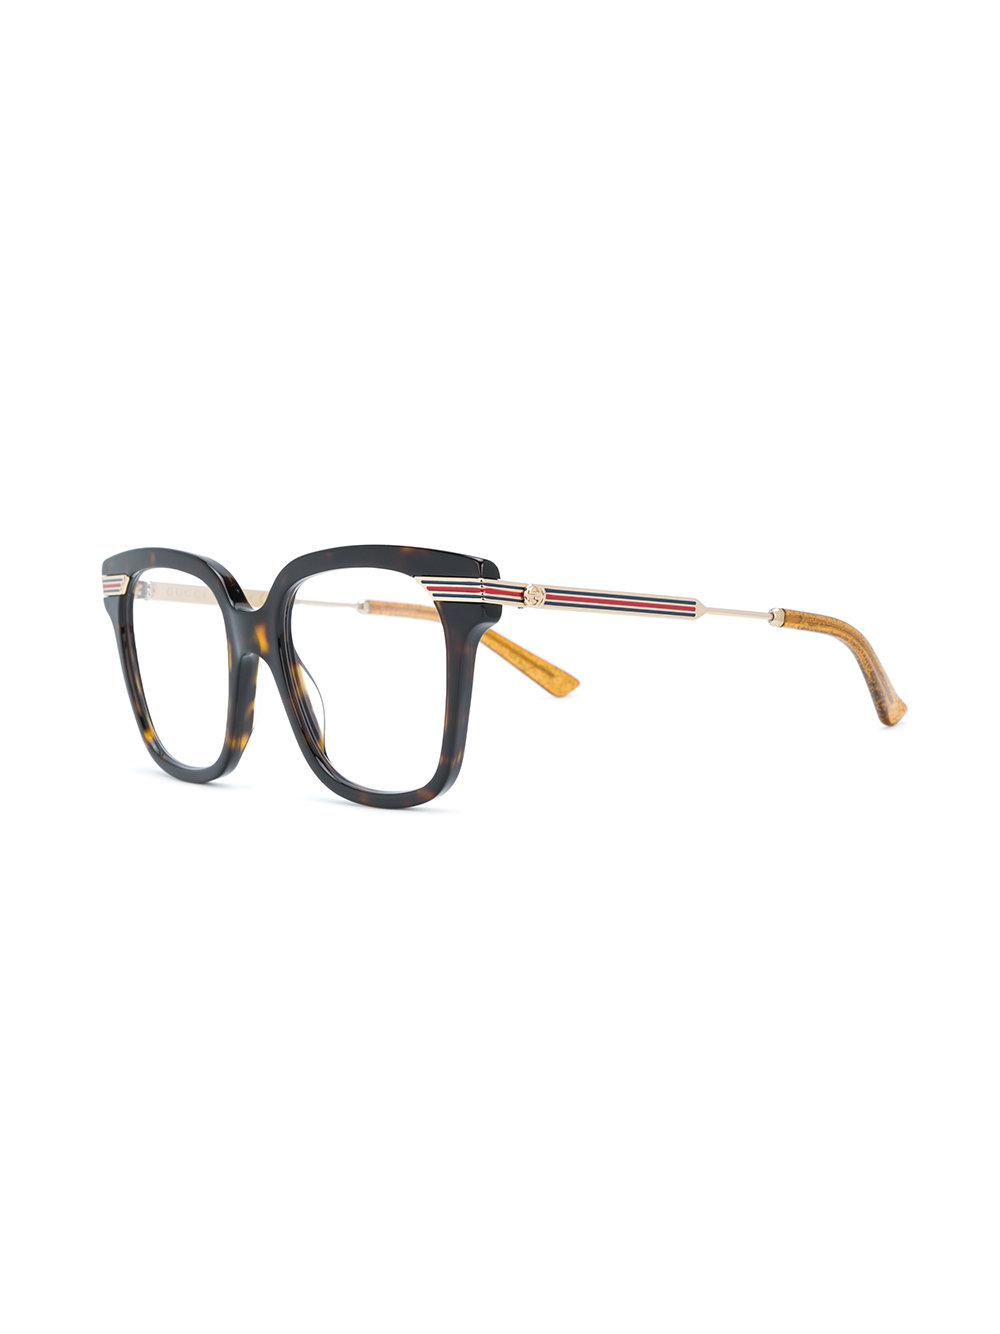 dbf9ba8a8a505 Gucci Tortoiseshell Square Frame Glasses in Brown - Lyst